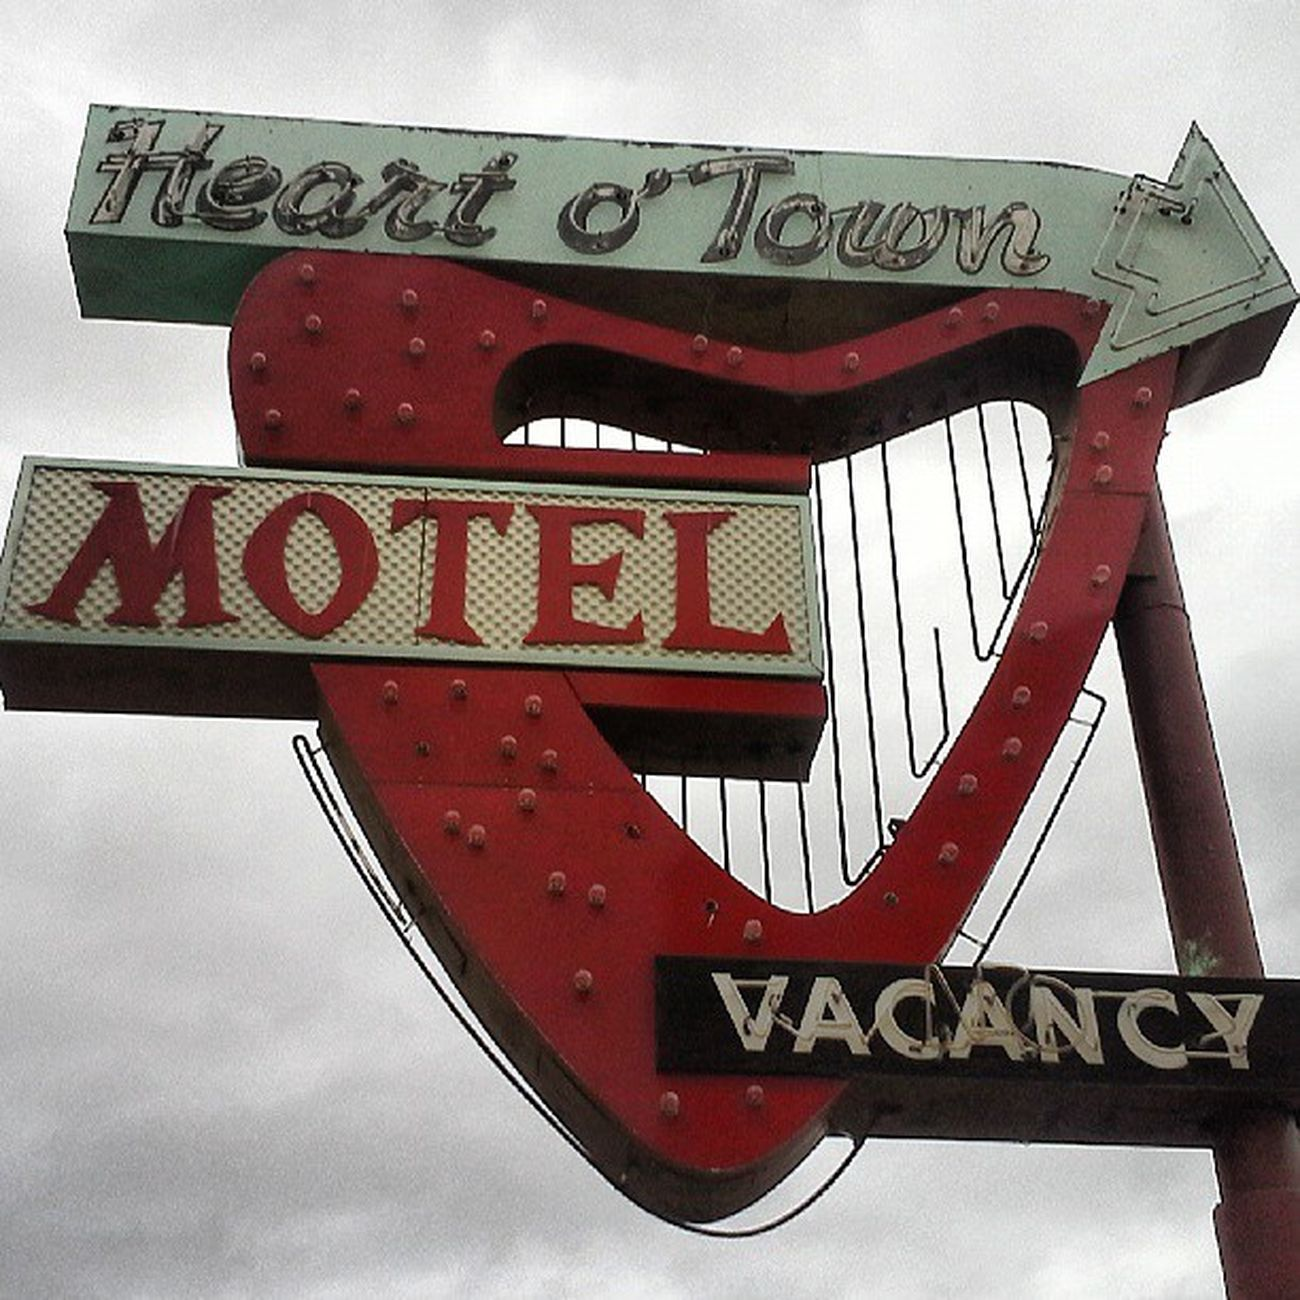 Downtown Signage Town Vacation Vacancy Heart Streetview Neon Sign Motel Photooftheday Picoftheday Nofilter Reno Streetshot Trailblazers_rurex Trb_whatsyoursign Oldsigns Signgeeks Streetalma Rous_roadsigns Signfixation Signswitharrows Savethesigns Igsignage Neon_signs Retrosign Igsigns Oldreno